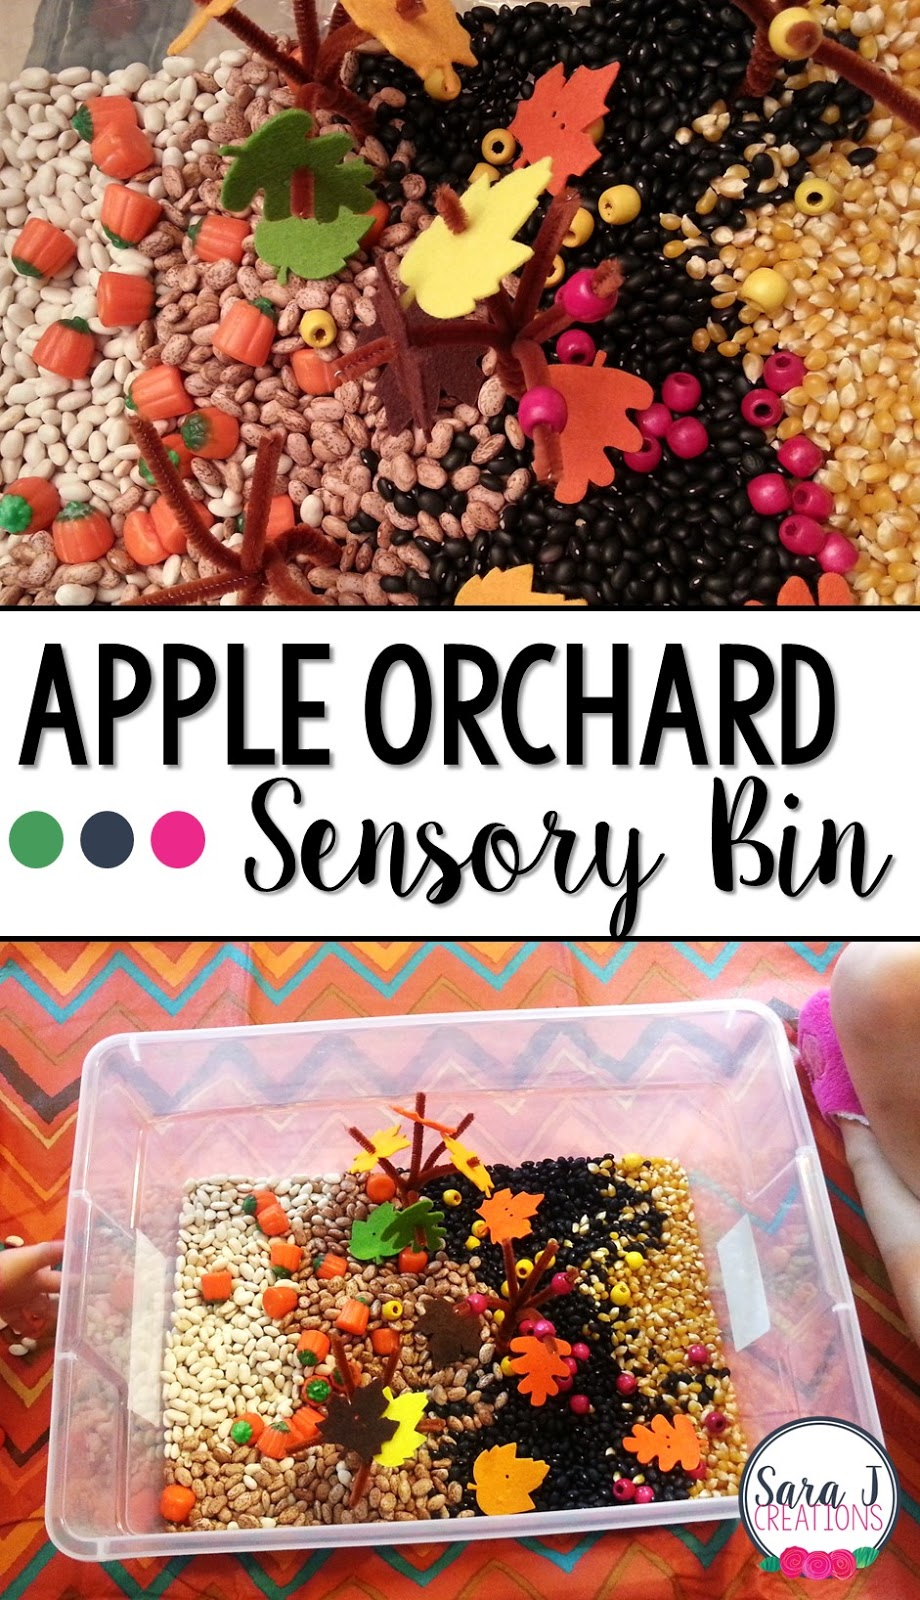 A fun fall sensory bin idea that is great fine motor practice for toddlers and preschool aged kids.